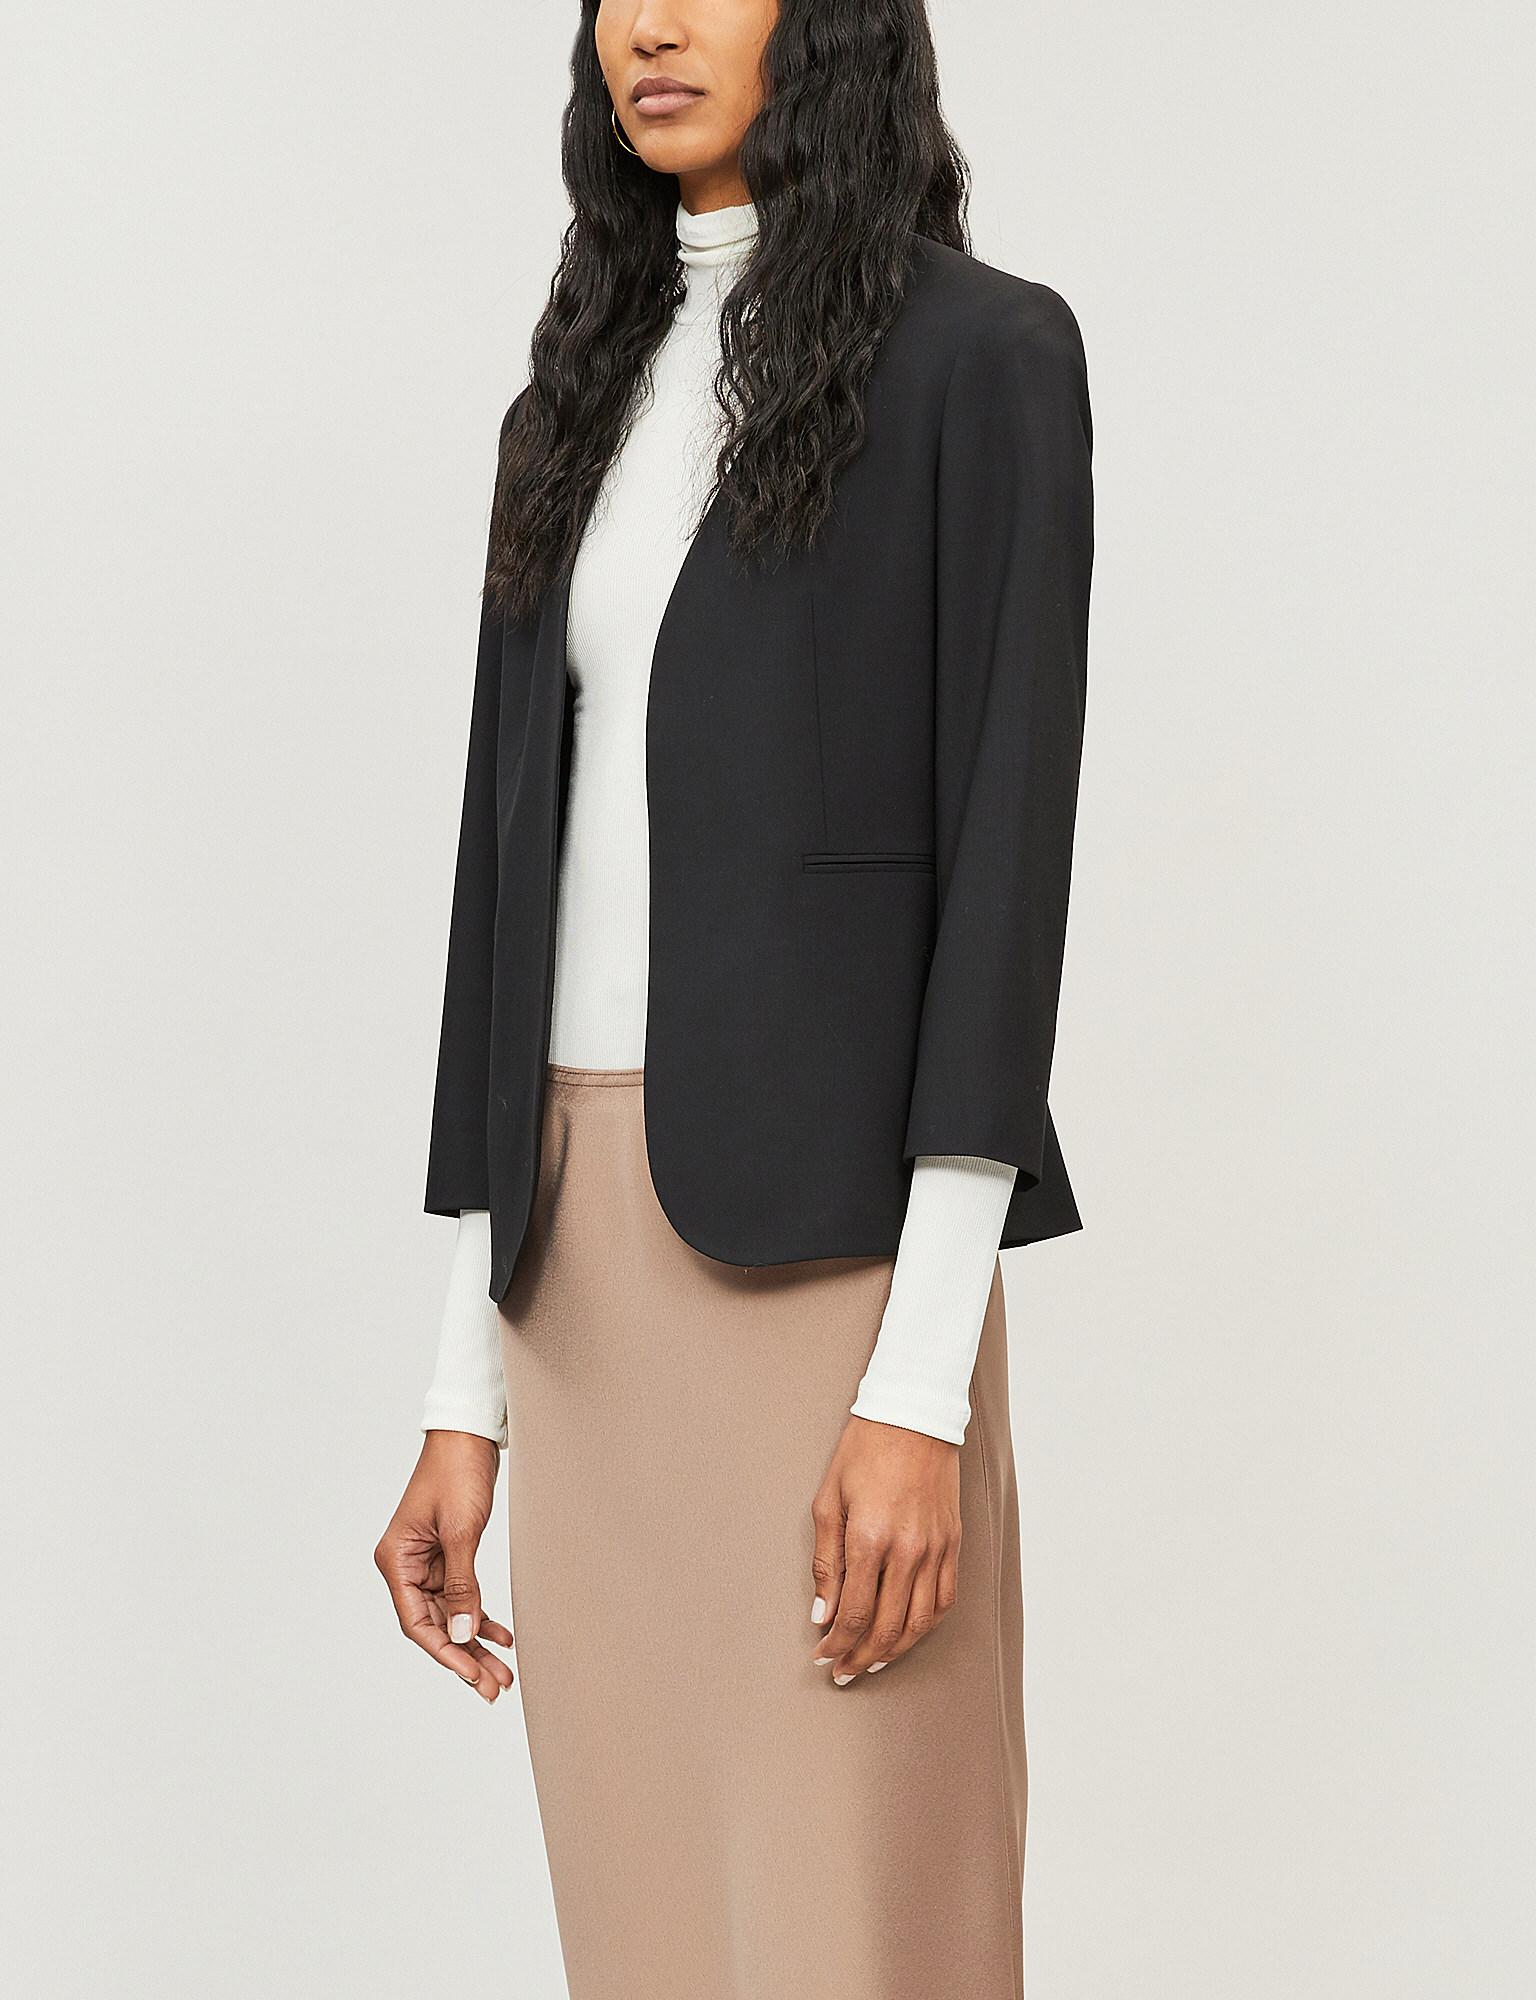 829826e8881c Theory - Womens Black Lindrayia Cropped Stretch-wool Jacket - Lyst. View  fullscreen